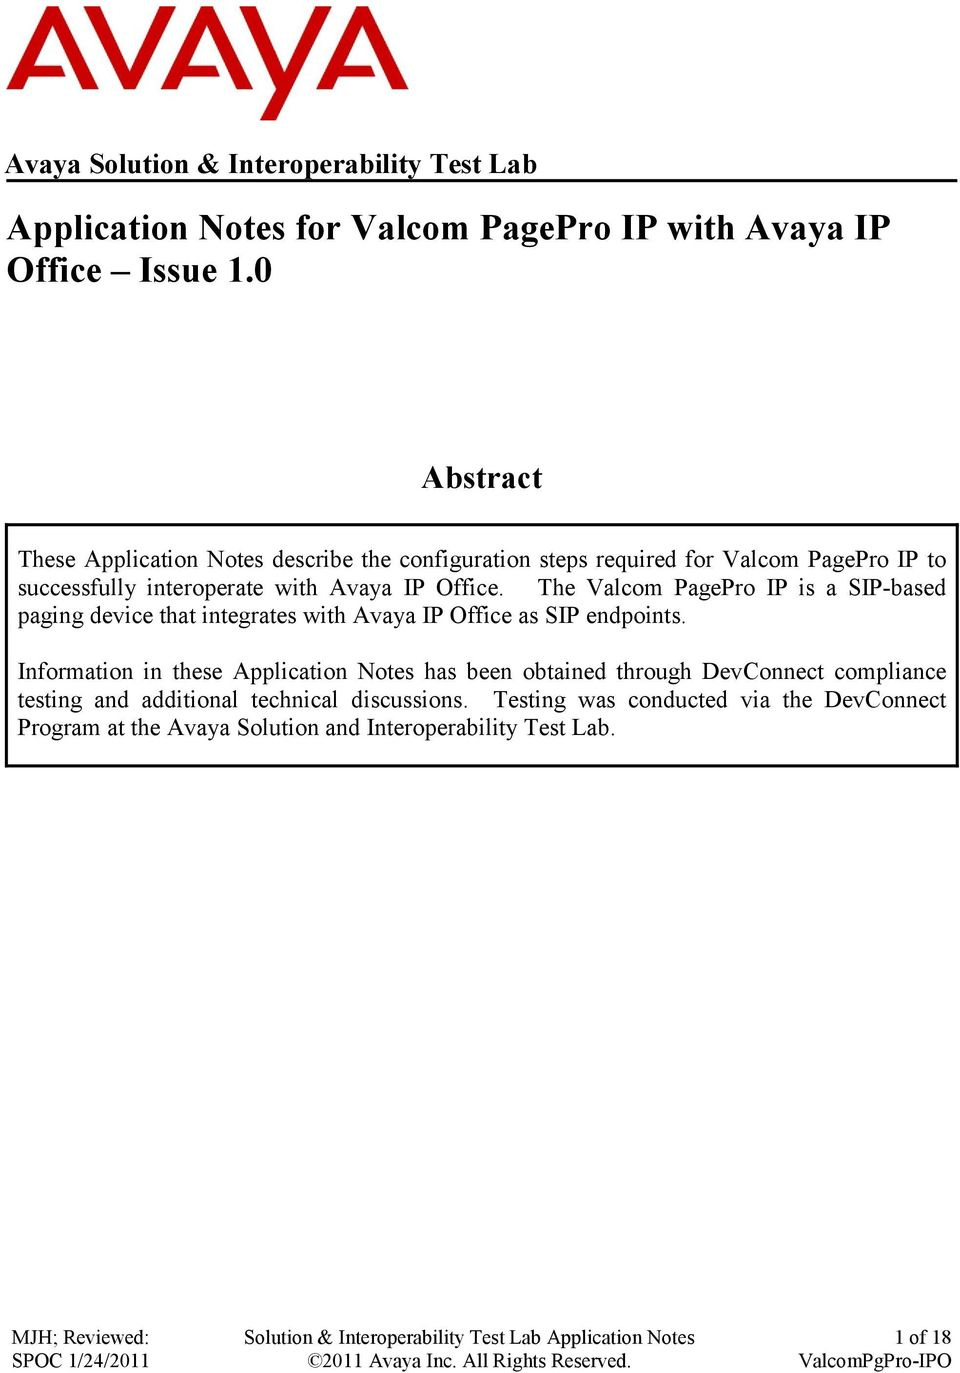 The Valcom PagePro IP is a SIP-based paging device that integrates with Avaya IP Office as SIP endpoints.